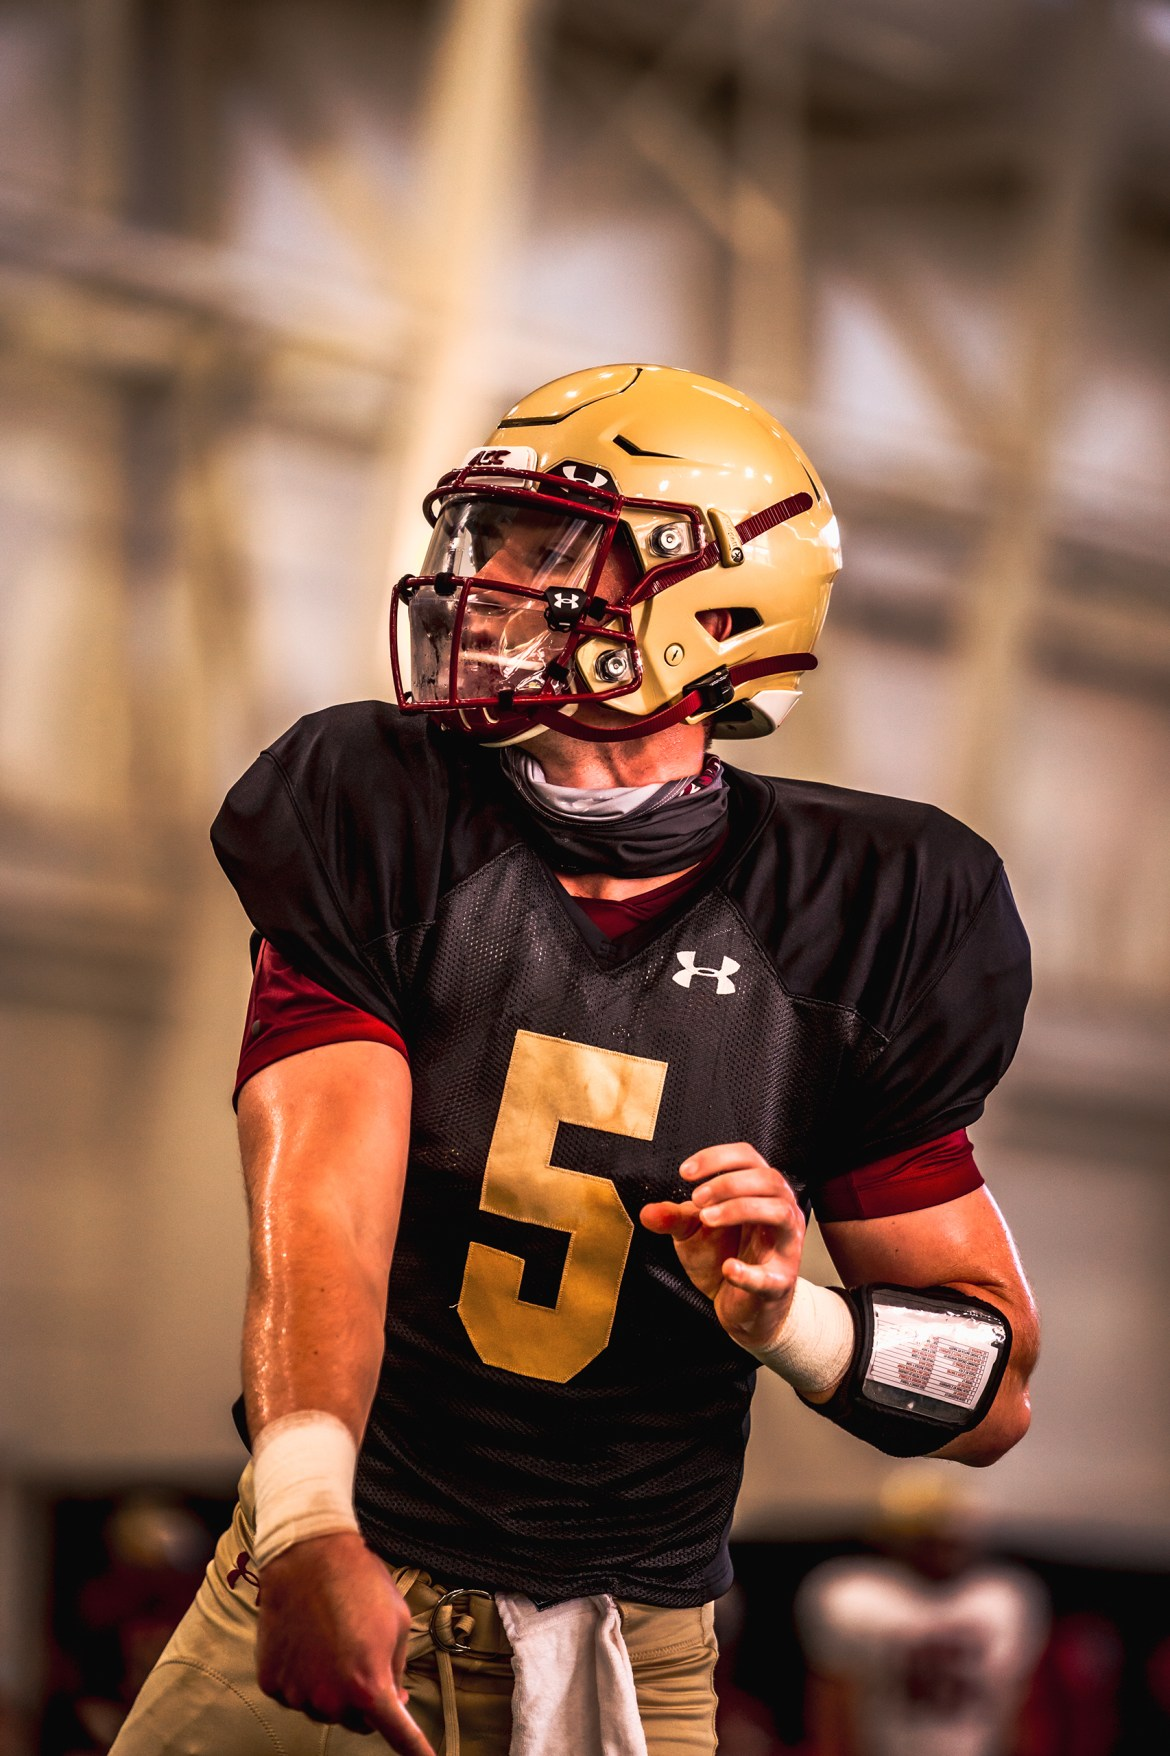 BC Football Preseason Blog #10: Full pads for Tuesday's practice